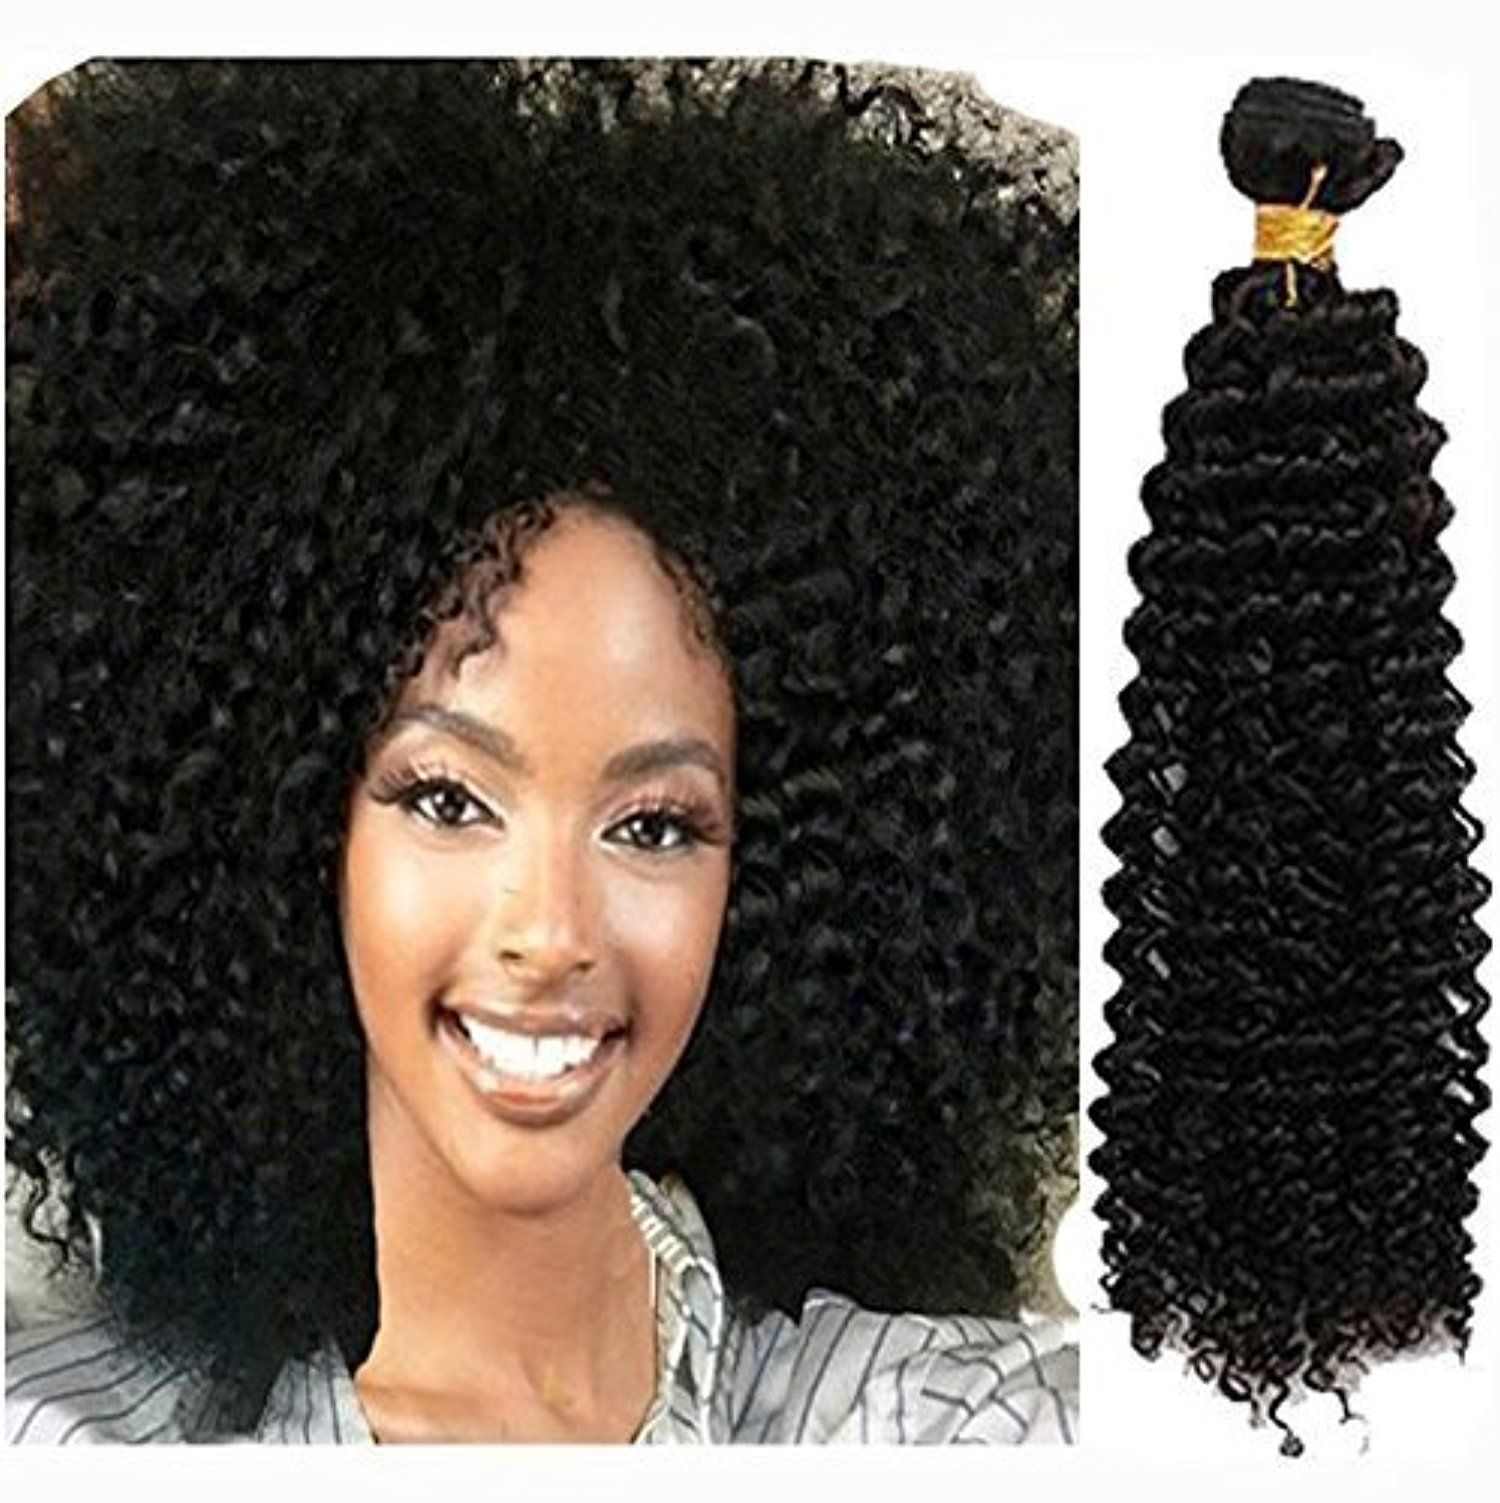 Sunny sew in weave kinky curly human hair 1 bunlde 14 inches sunny sew in weave kinky curly human hair 1 bunlde 14 inches unprocessed brazilian virgin hair pmusecretfo Image collections